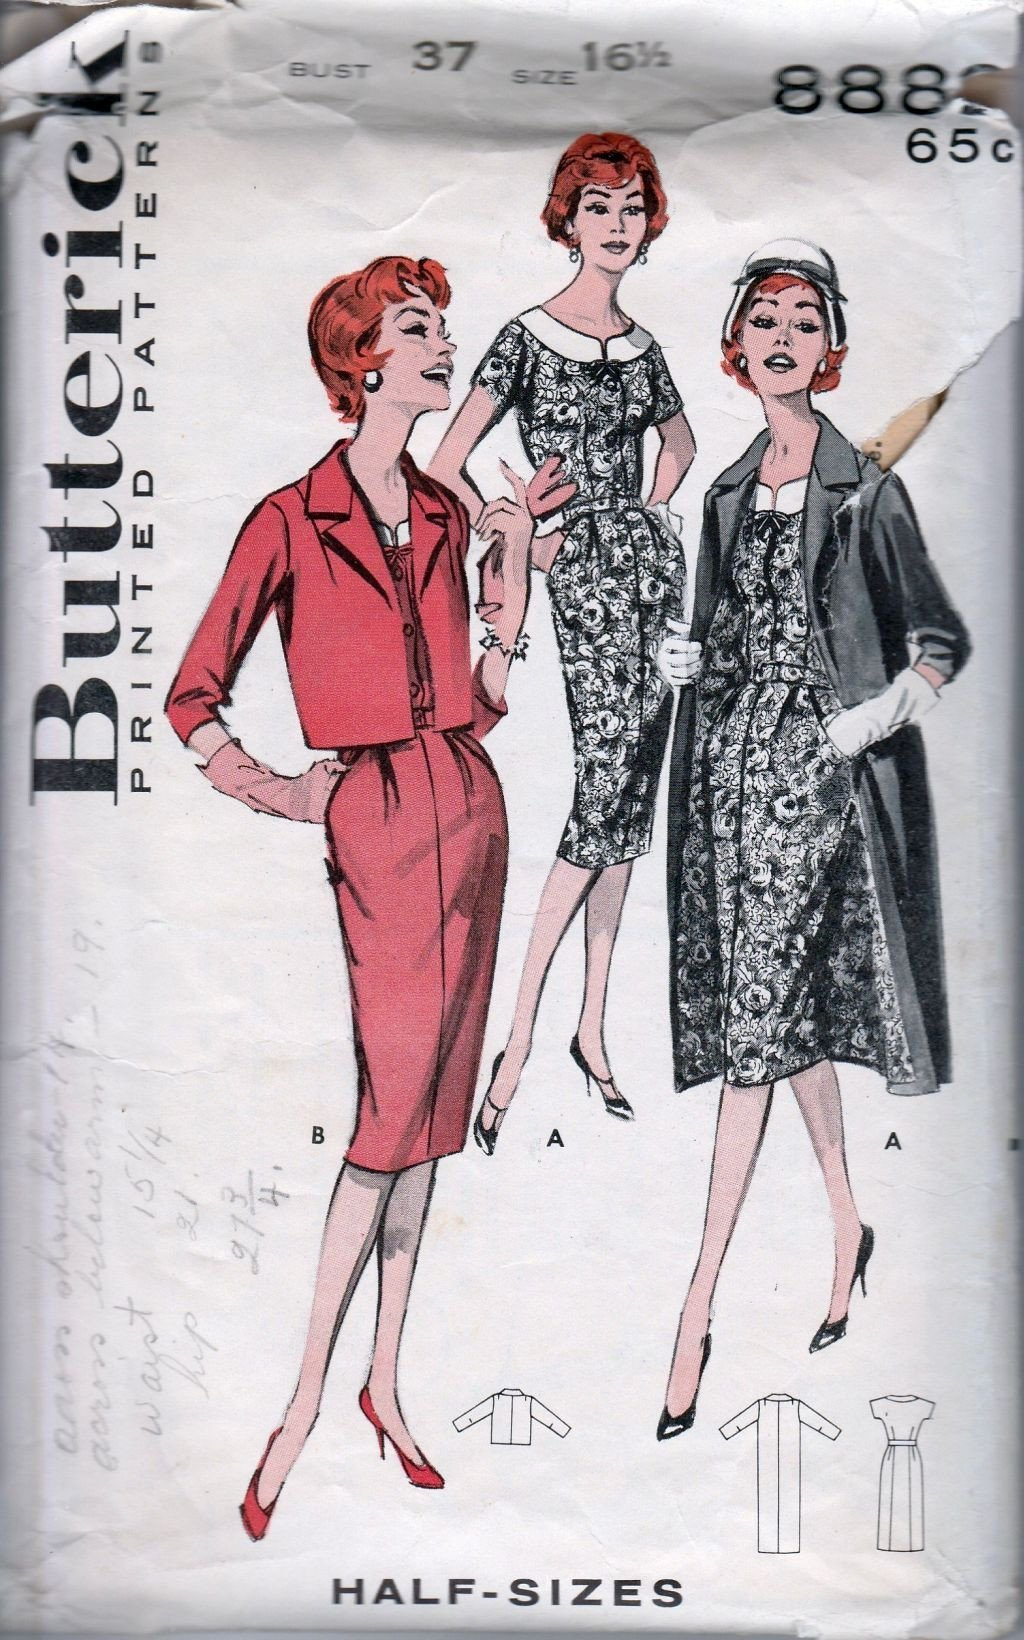 Butterick 8882 Vintage 1950's Sewing Pattern Ladies Sheath Dress Jacket Coat - VintageStitching - Vintage Sewing Patterns